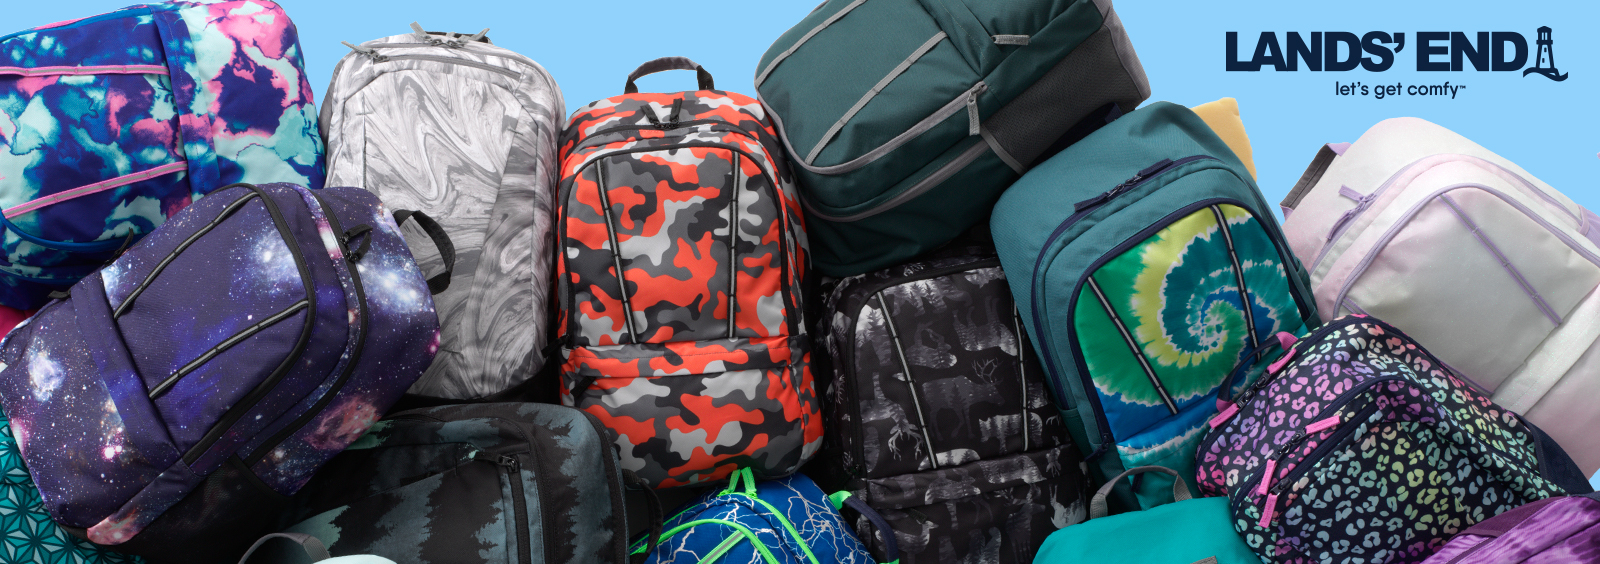 Guide to Shopping Lands' End Backpacks